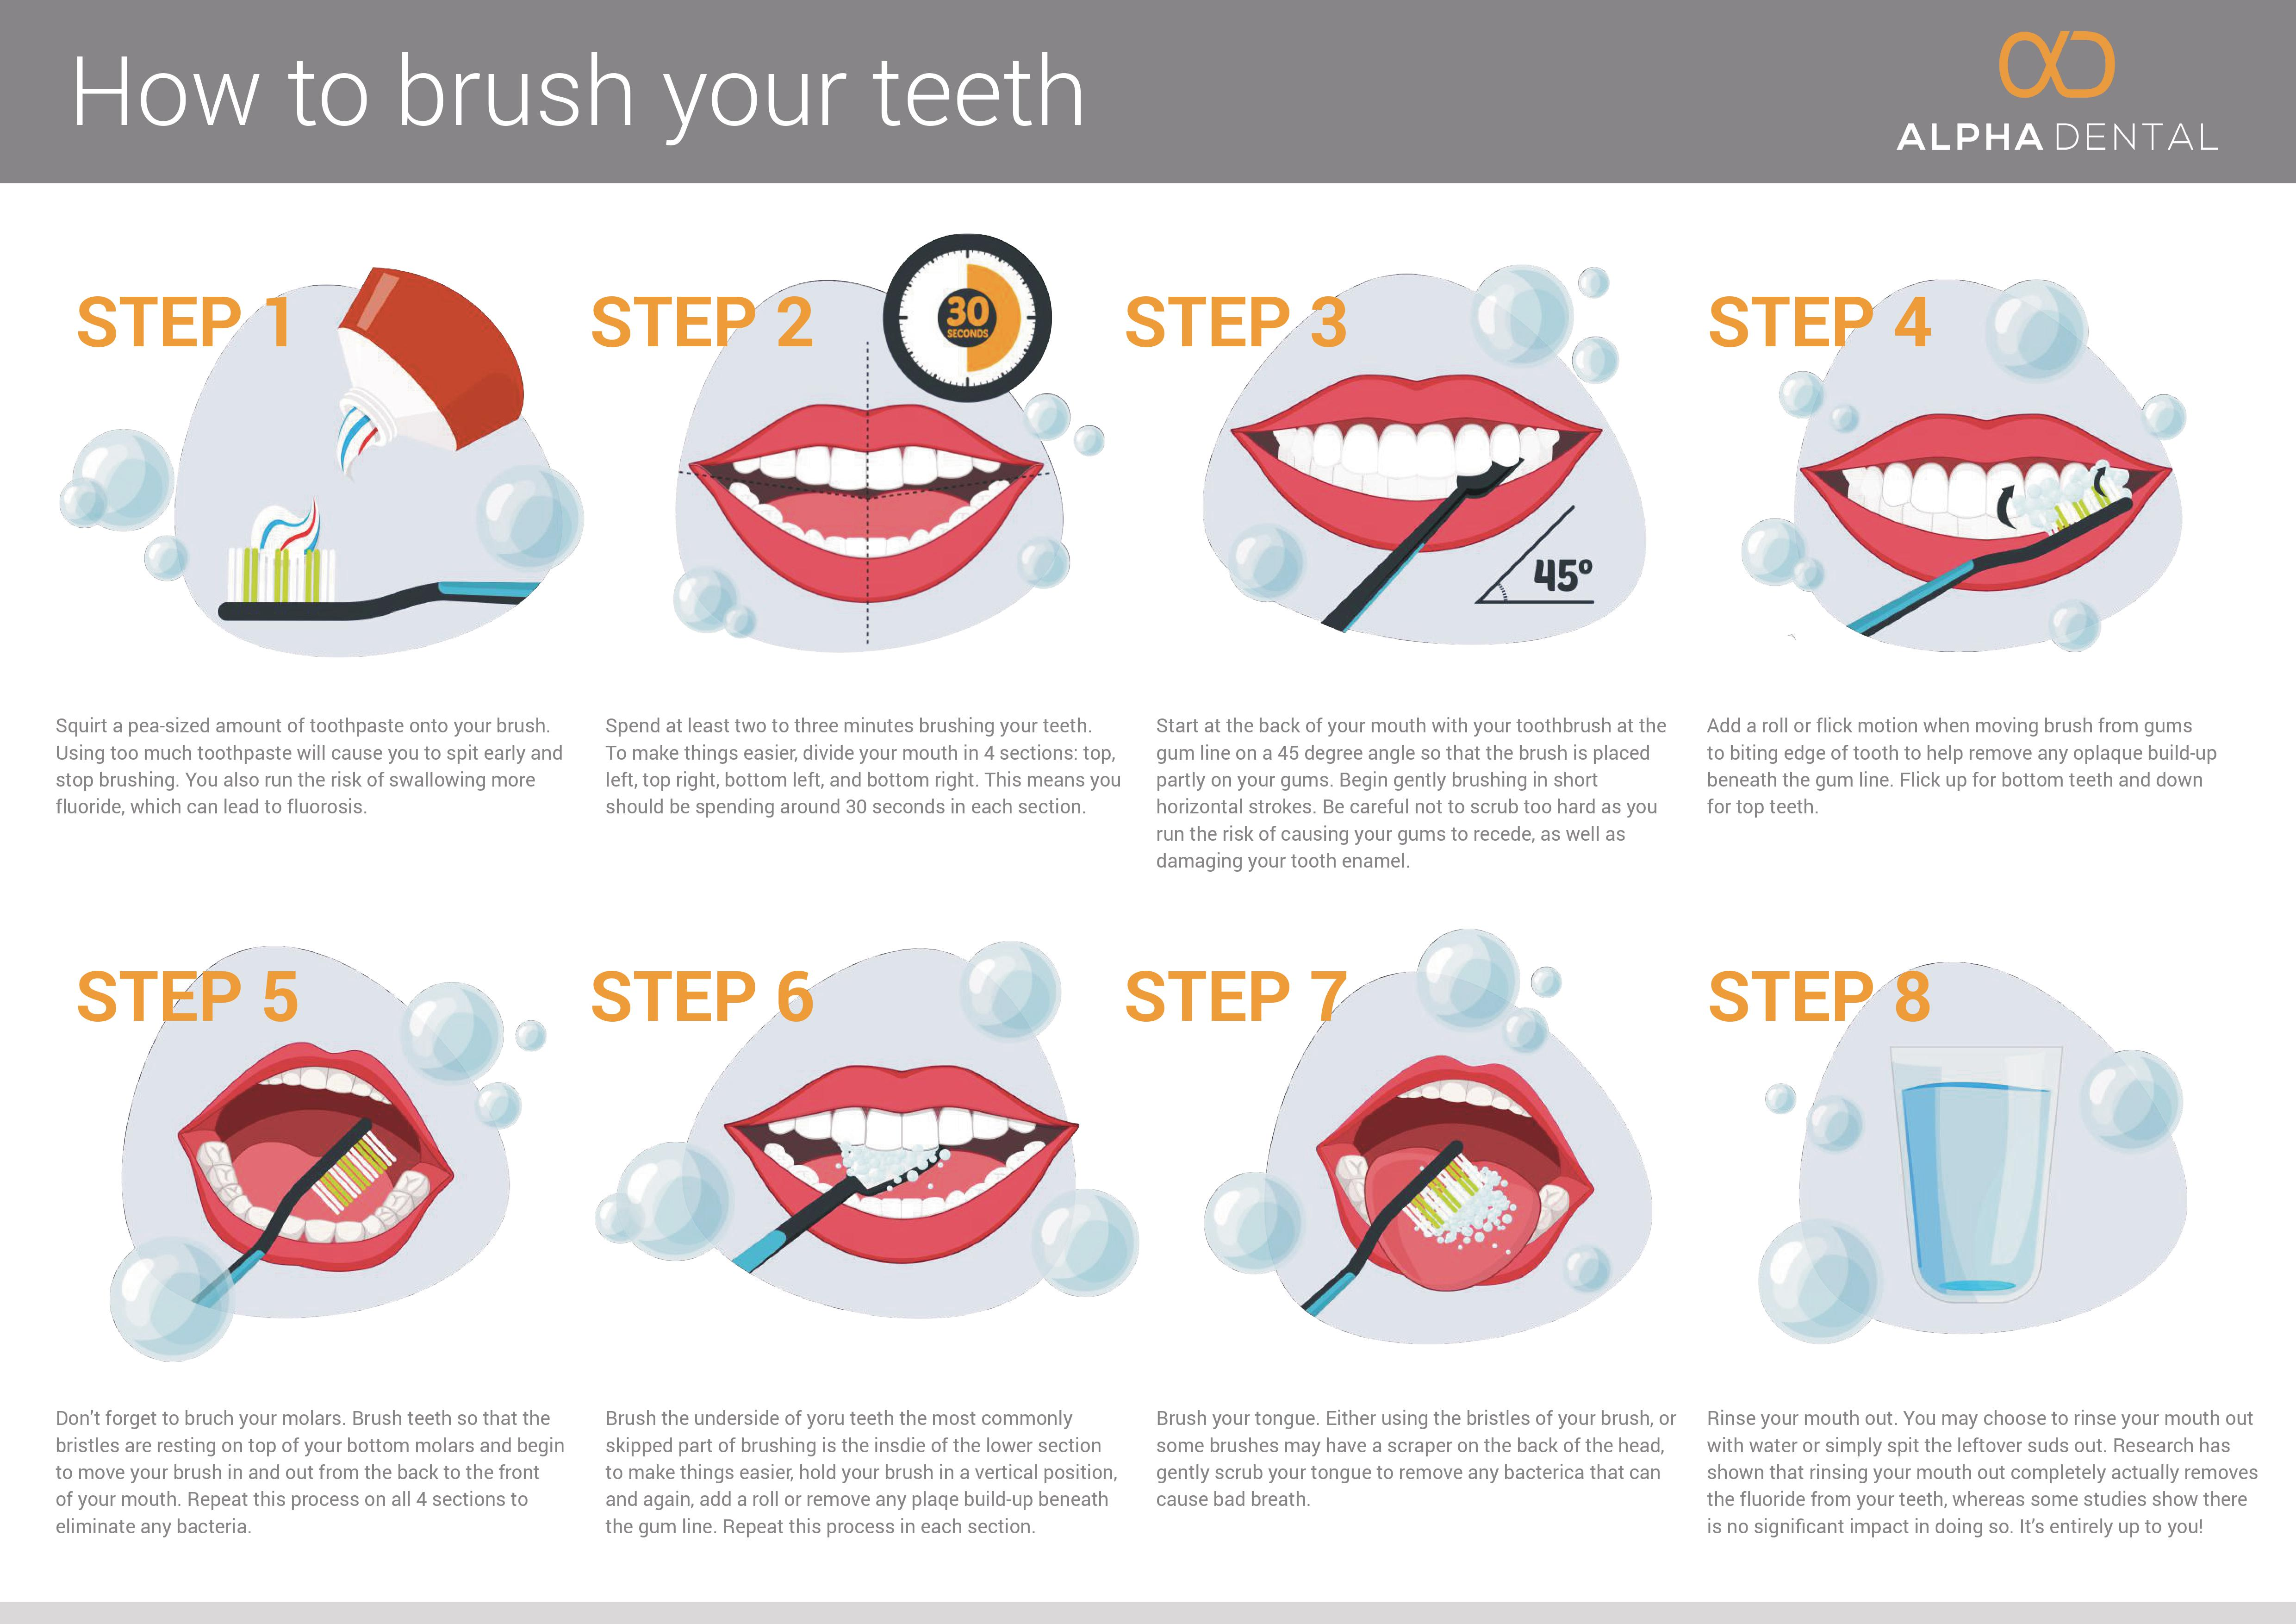 How-to-brush-your-teeth-infographic-by-Alpha-Dental-Perth-infographic-plaza